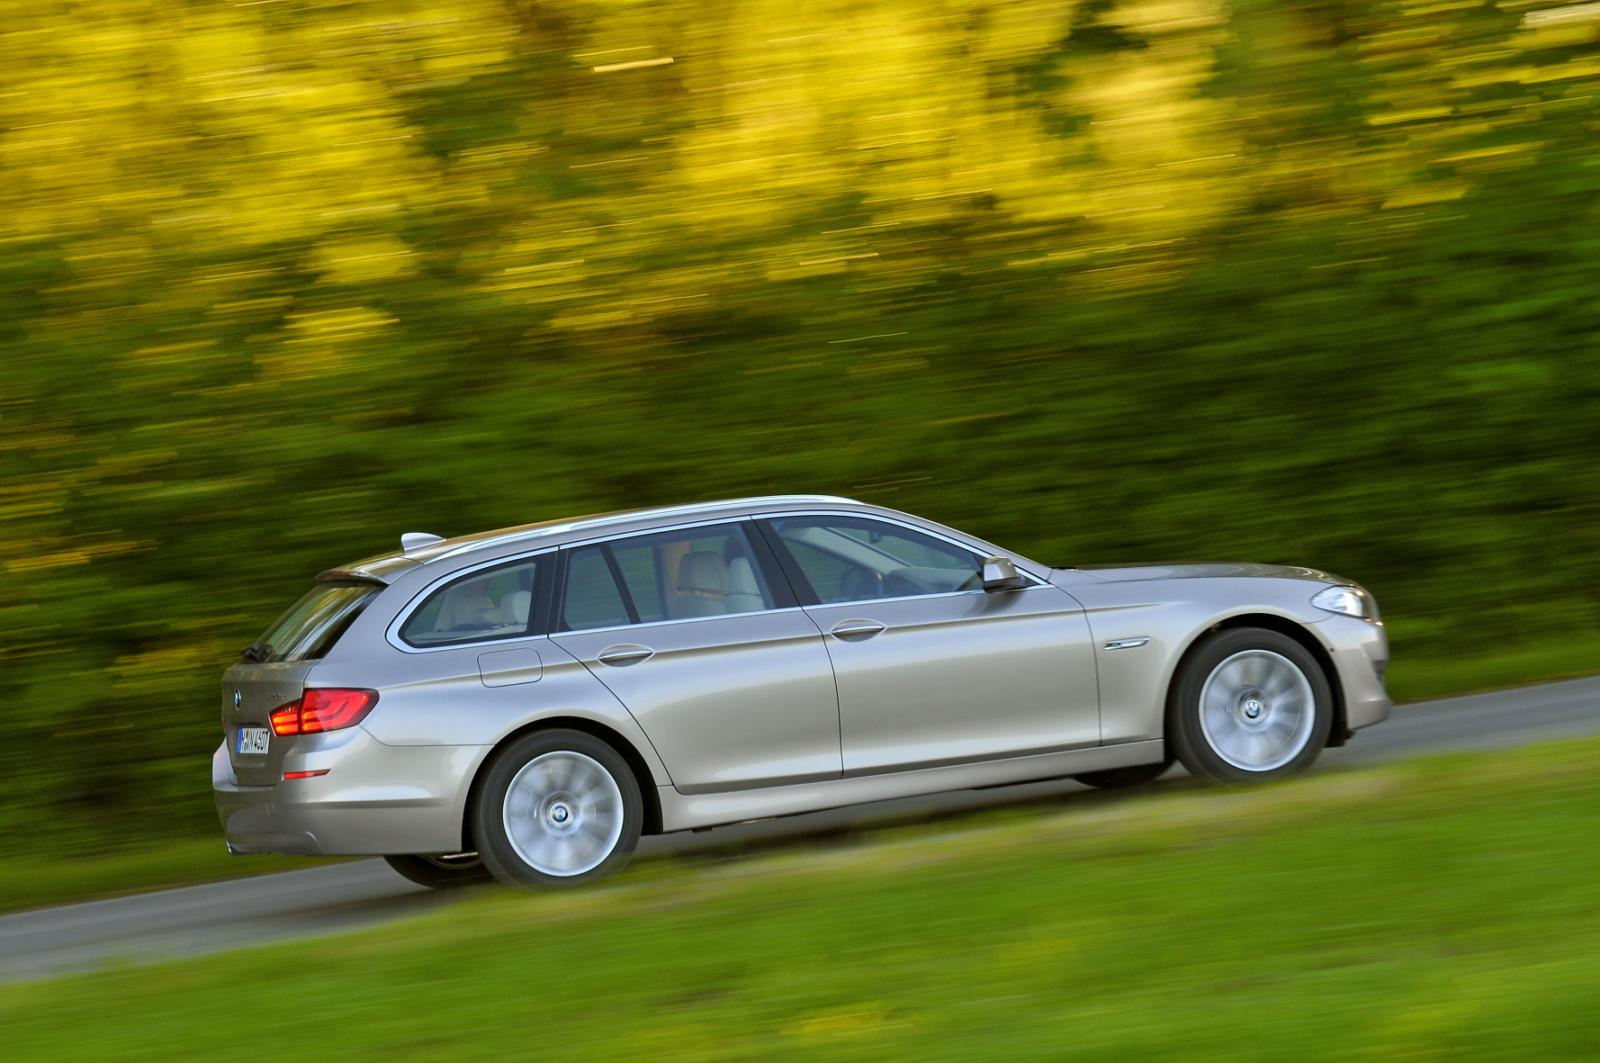 2011 bmw 5 series touring images 621